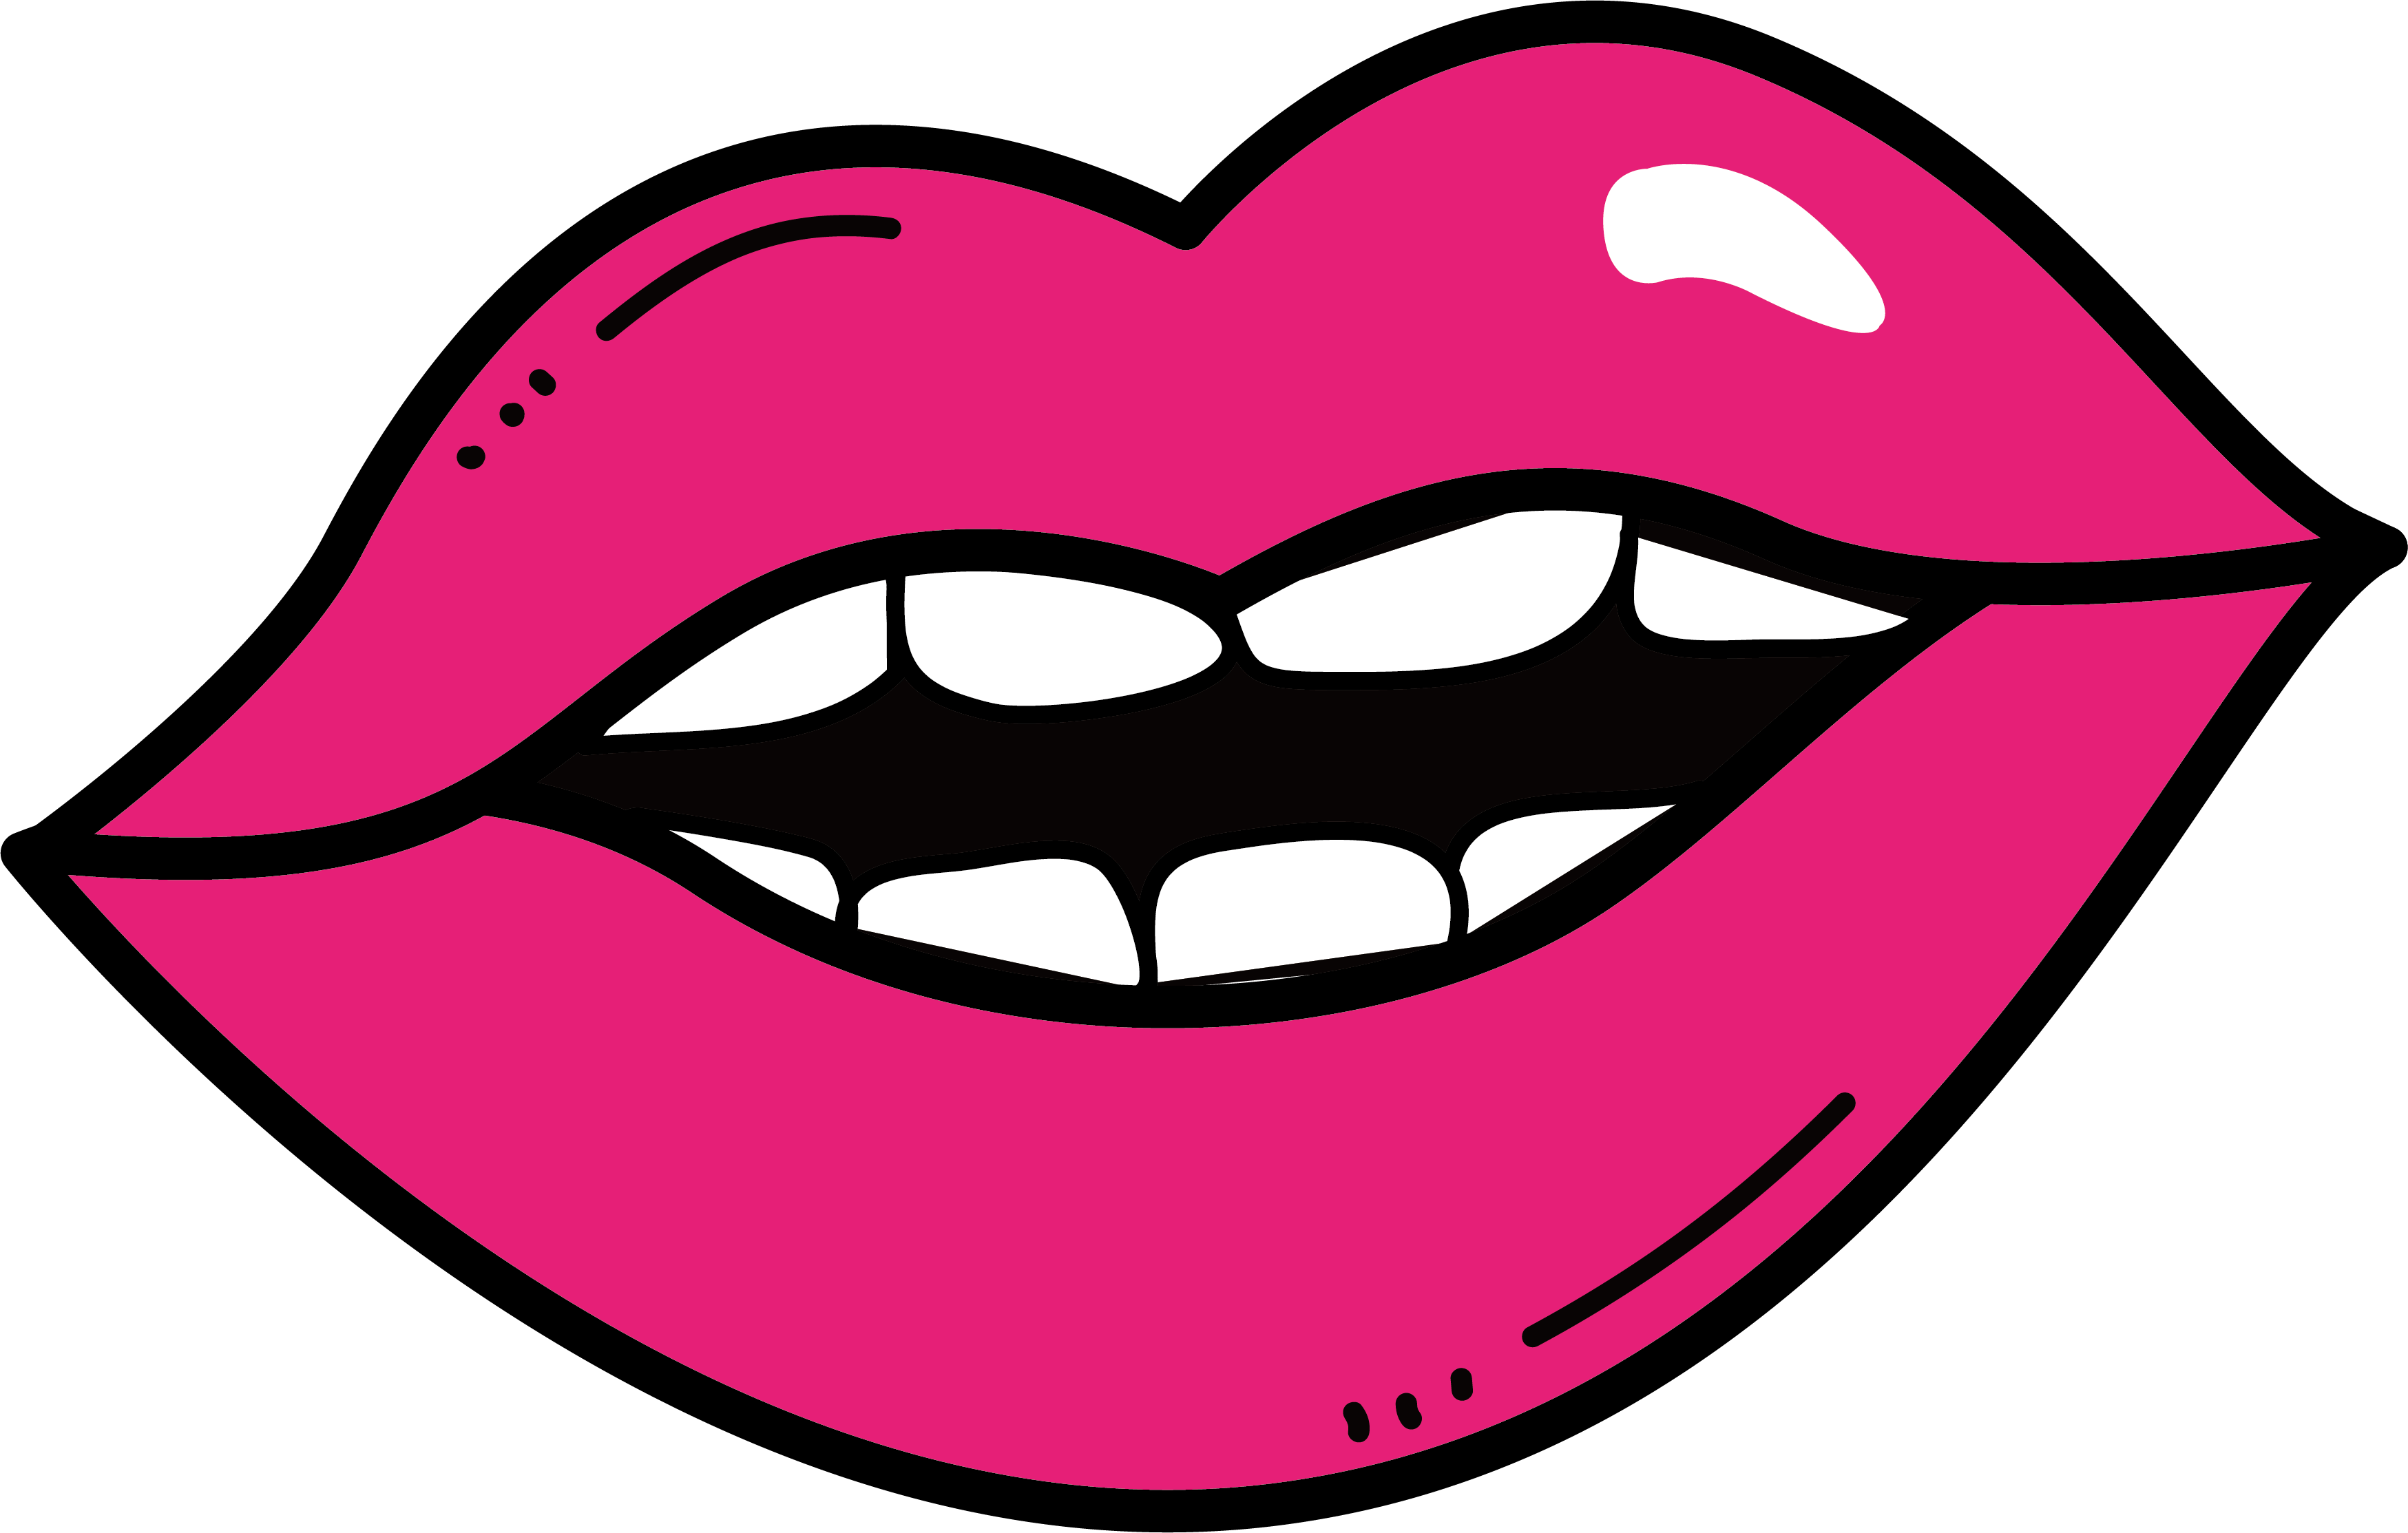 svg free library Bean drawing mouth. Collection of free tongue